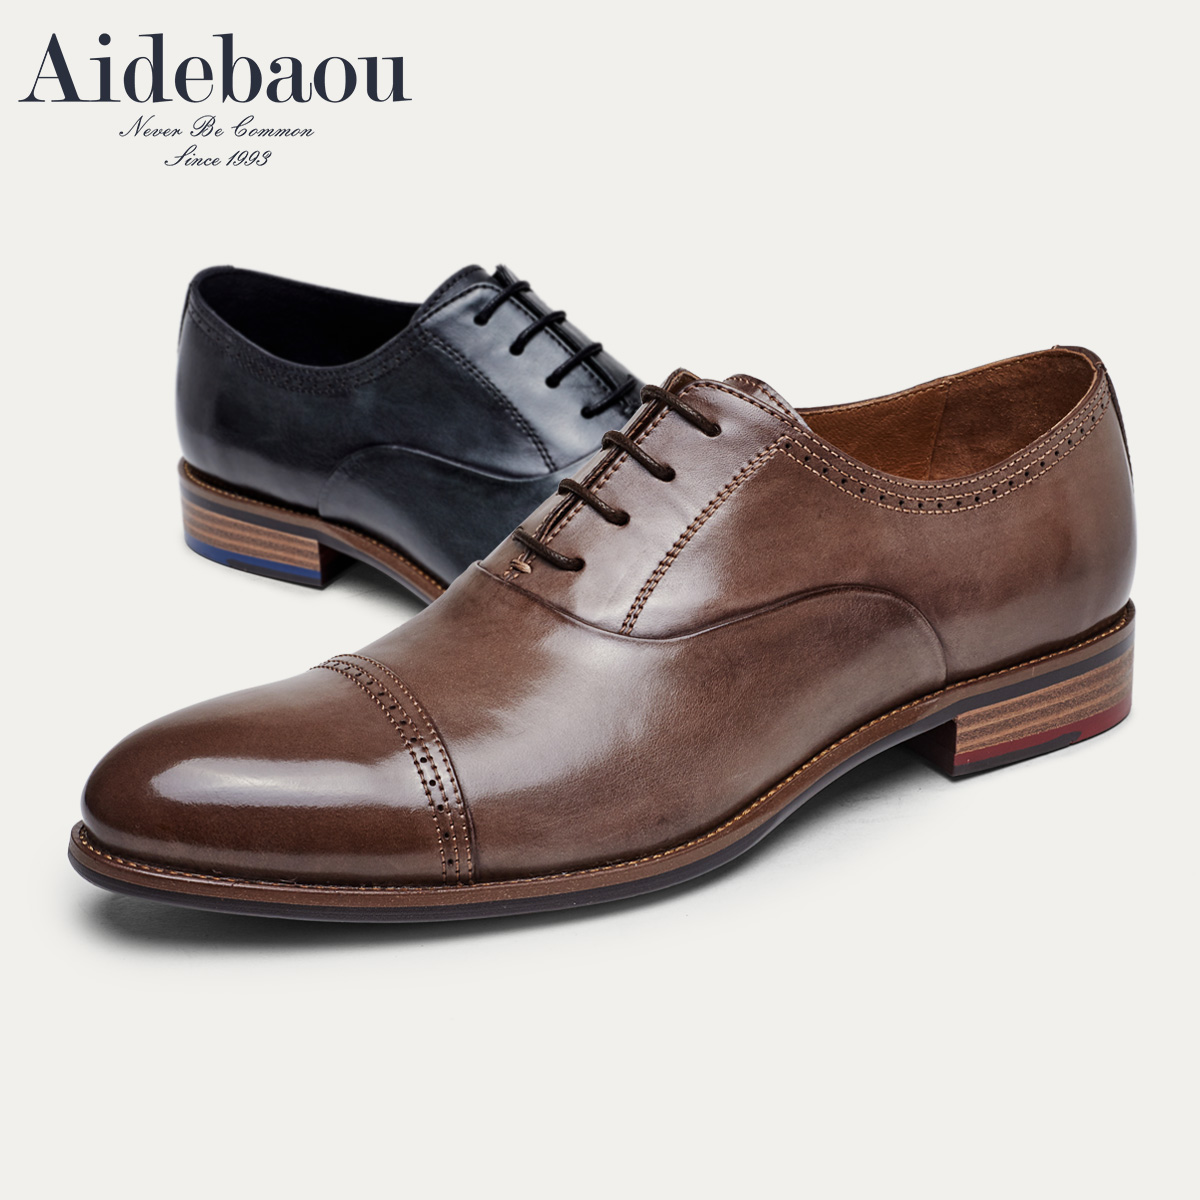 Edinburgh leather shoes business dress mens leather shoes formal leather shoes British leather shoes mens shoes business casual shoes